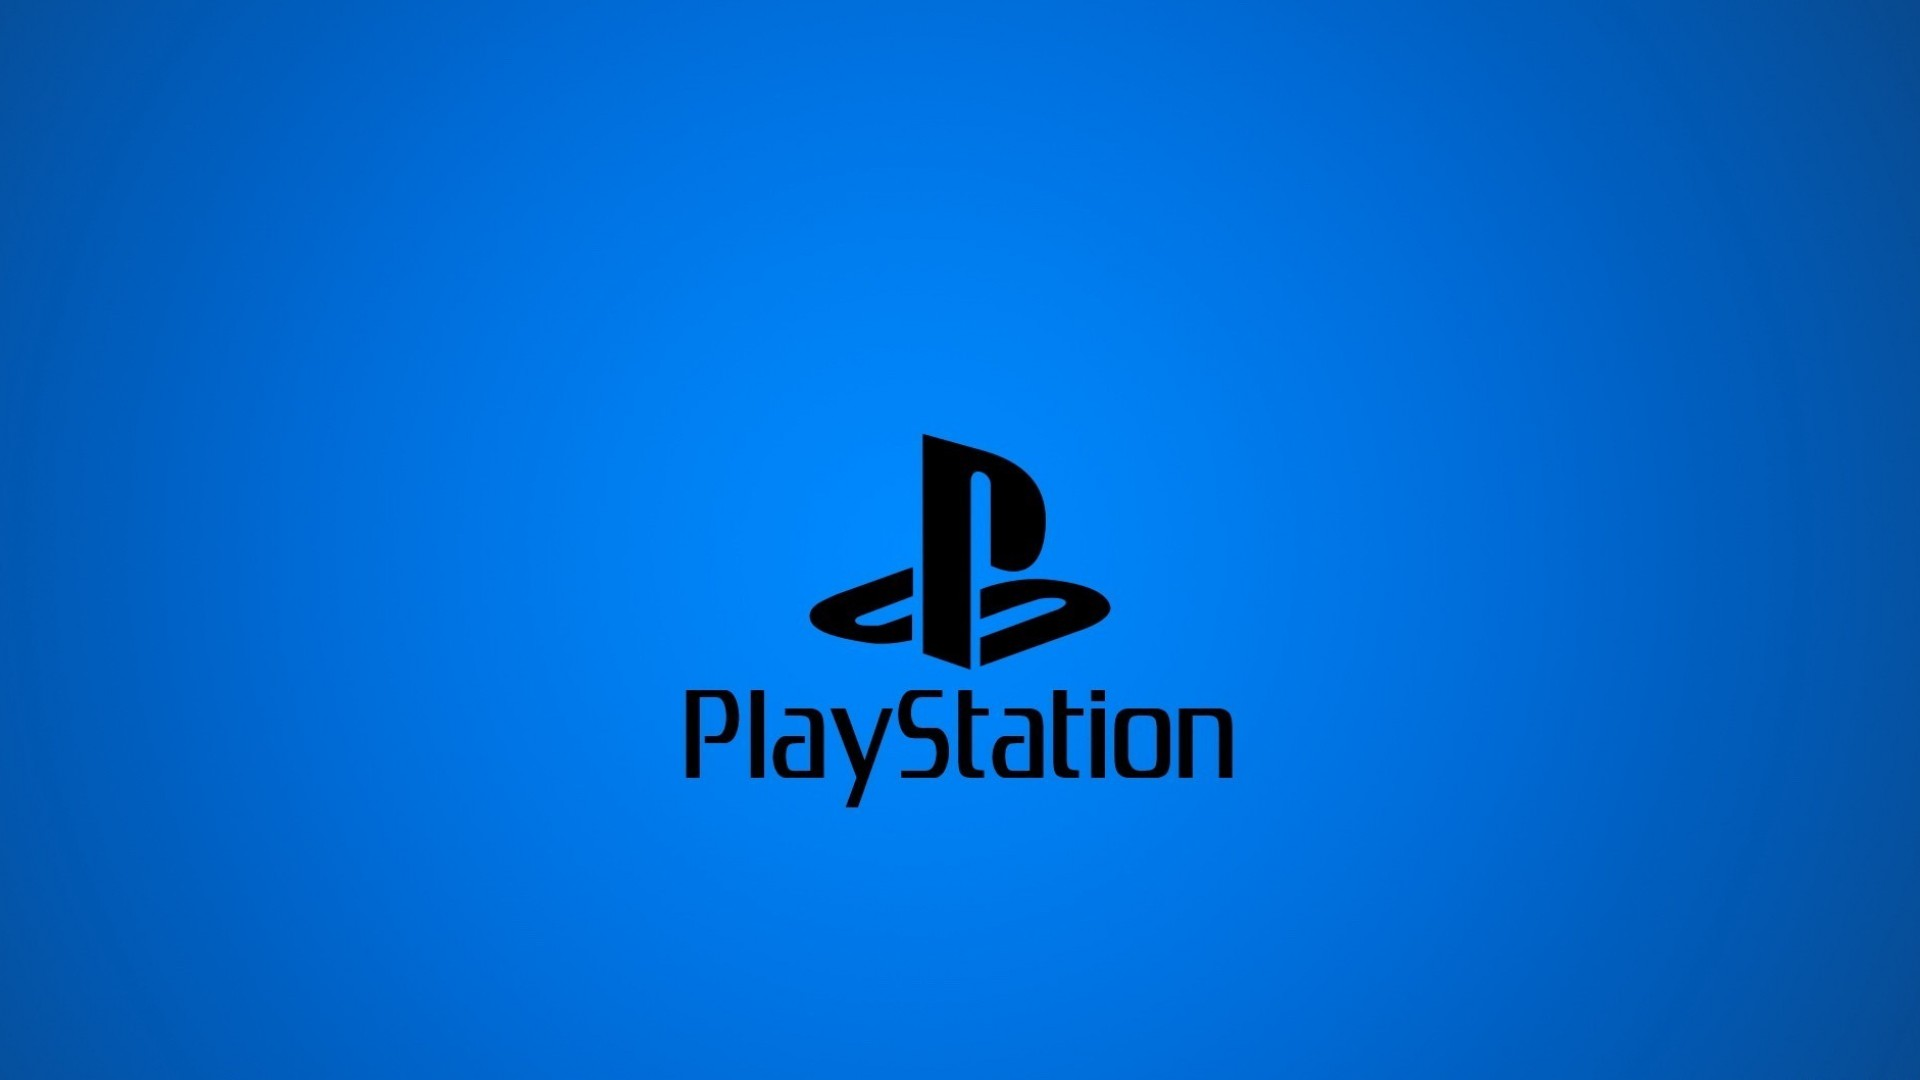 ... sony-playstation-hd-wallpaper ...